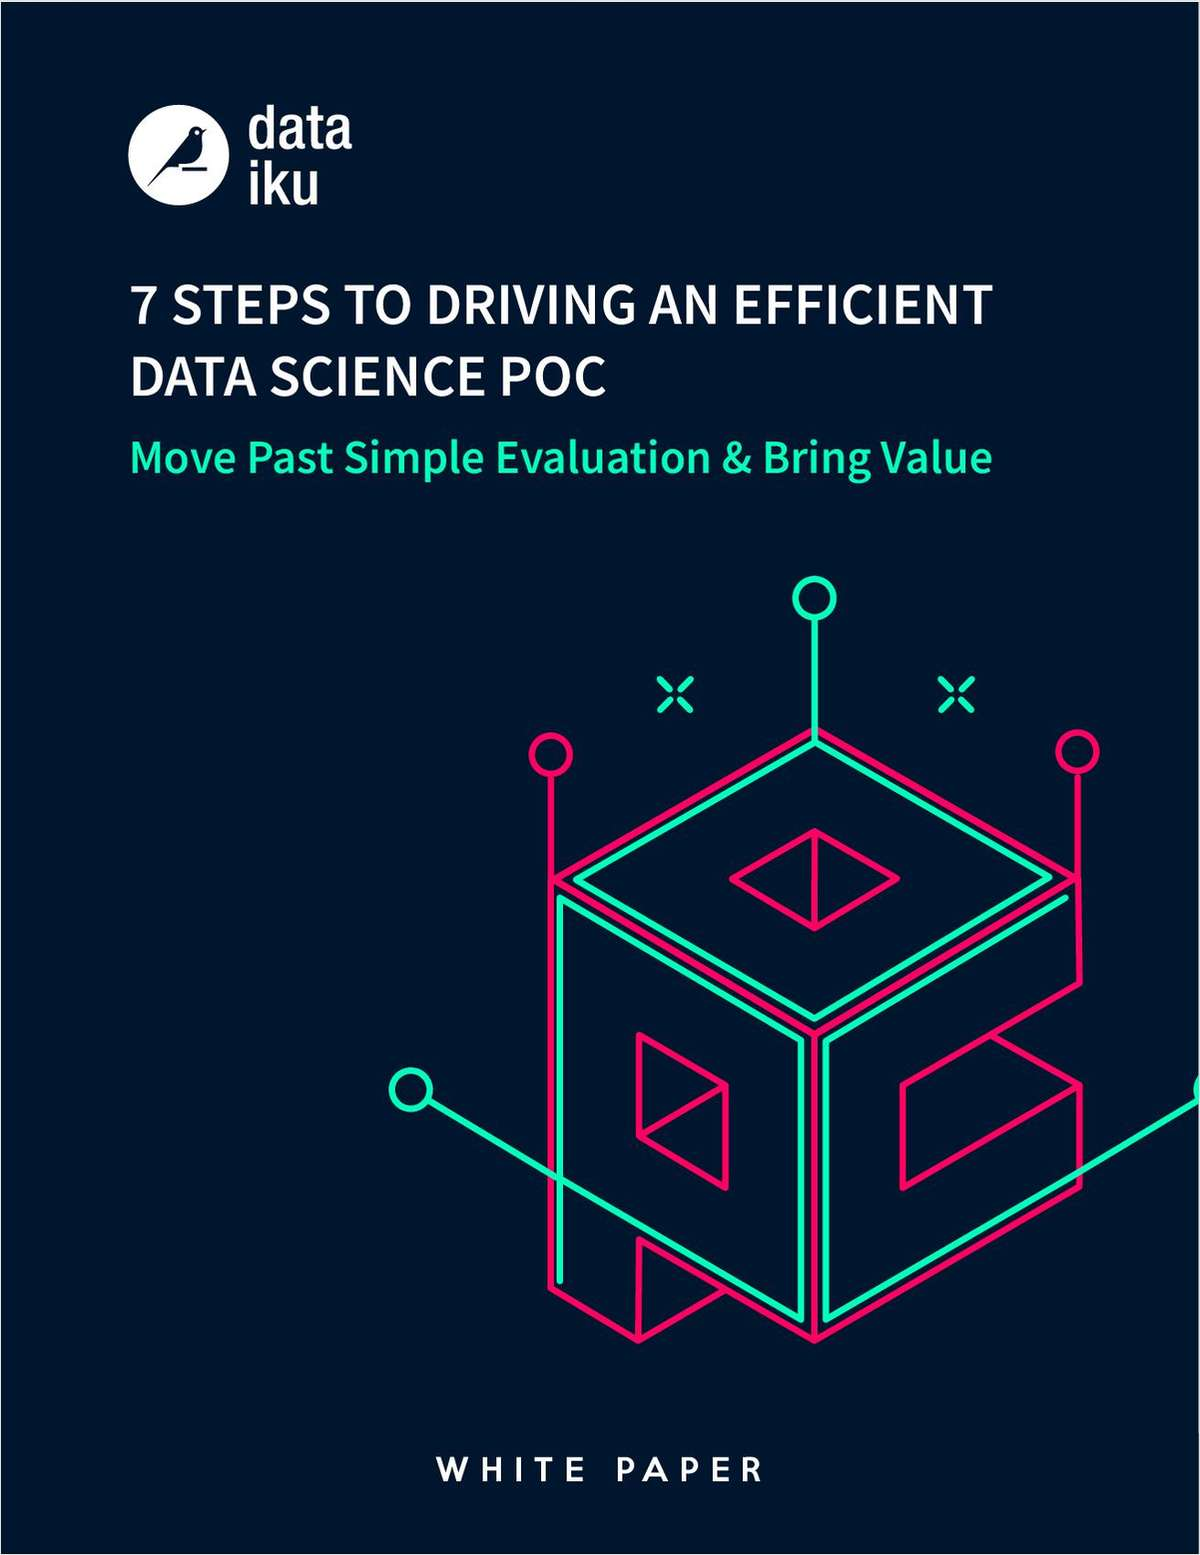 7 Steps to Driving an Efficient Data Science POC